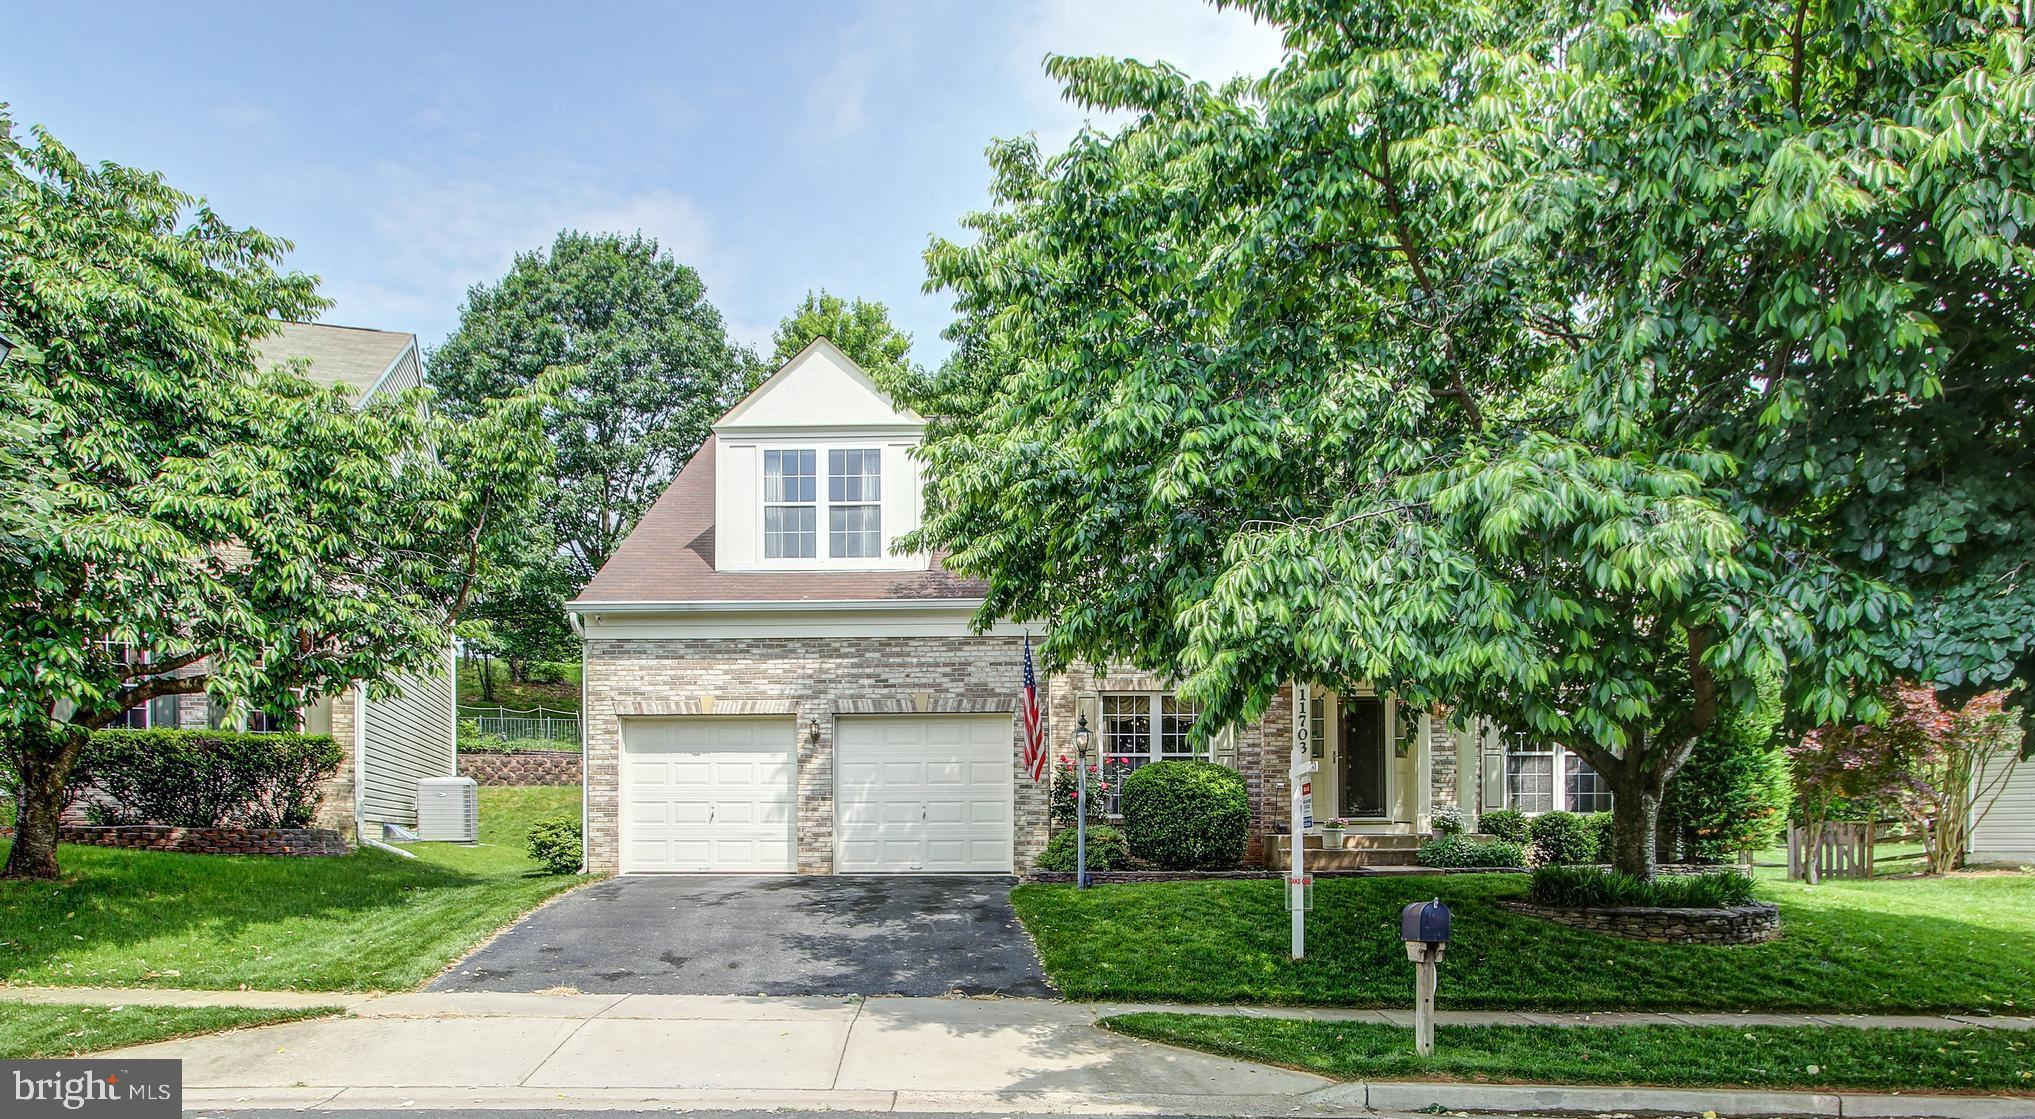 11703 TALL PINES DRIVE, GERMANTOWN, MD 20876